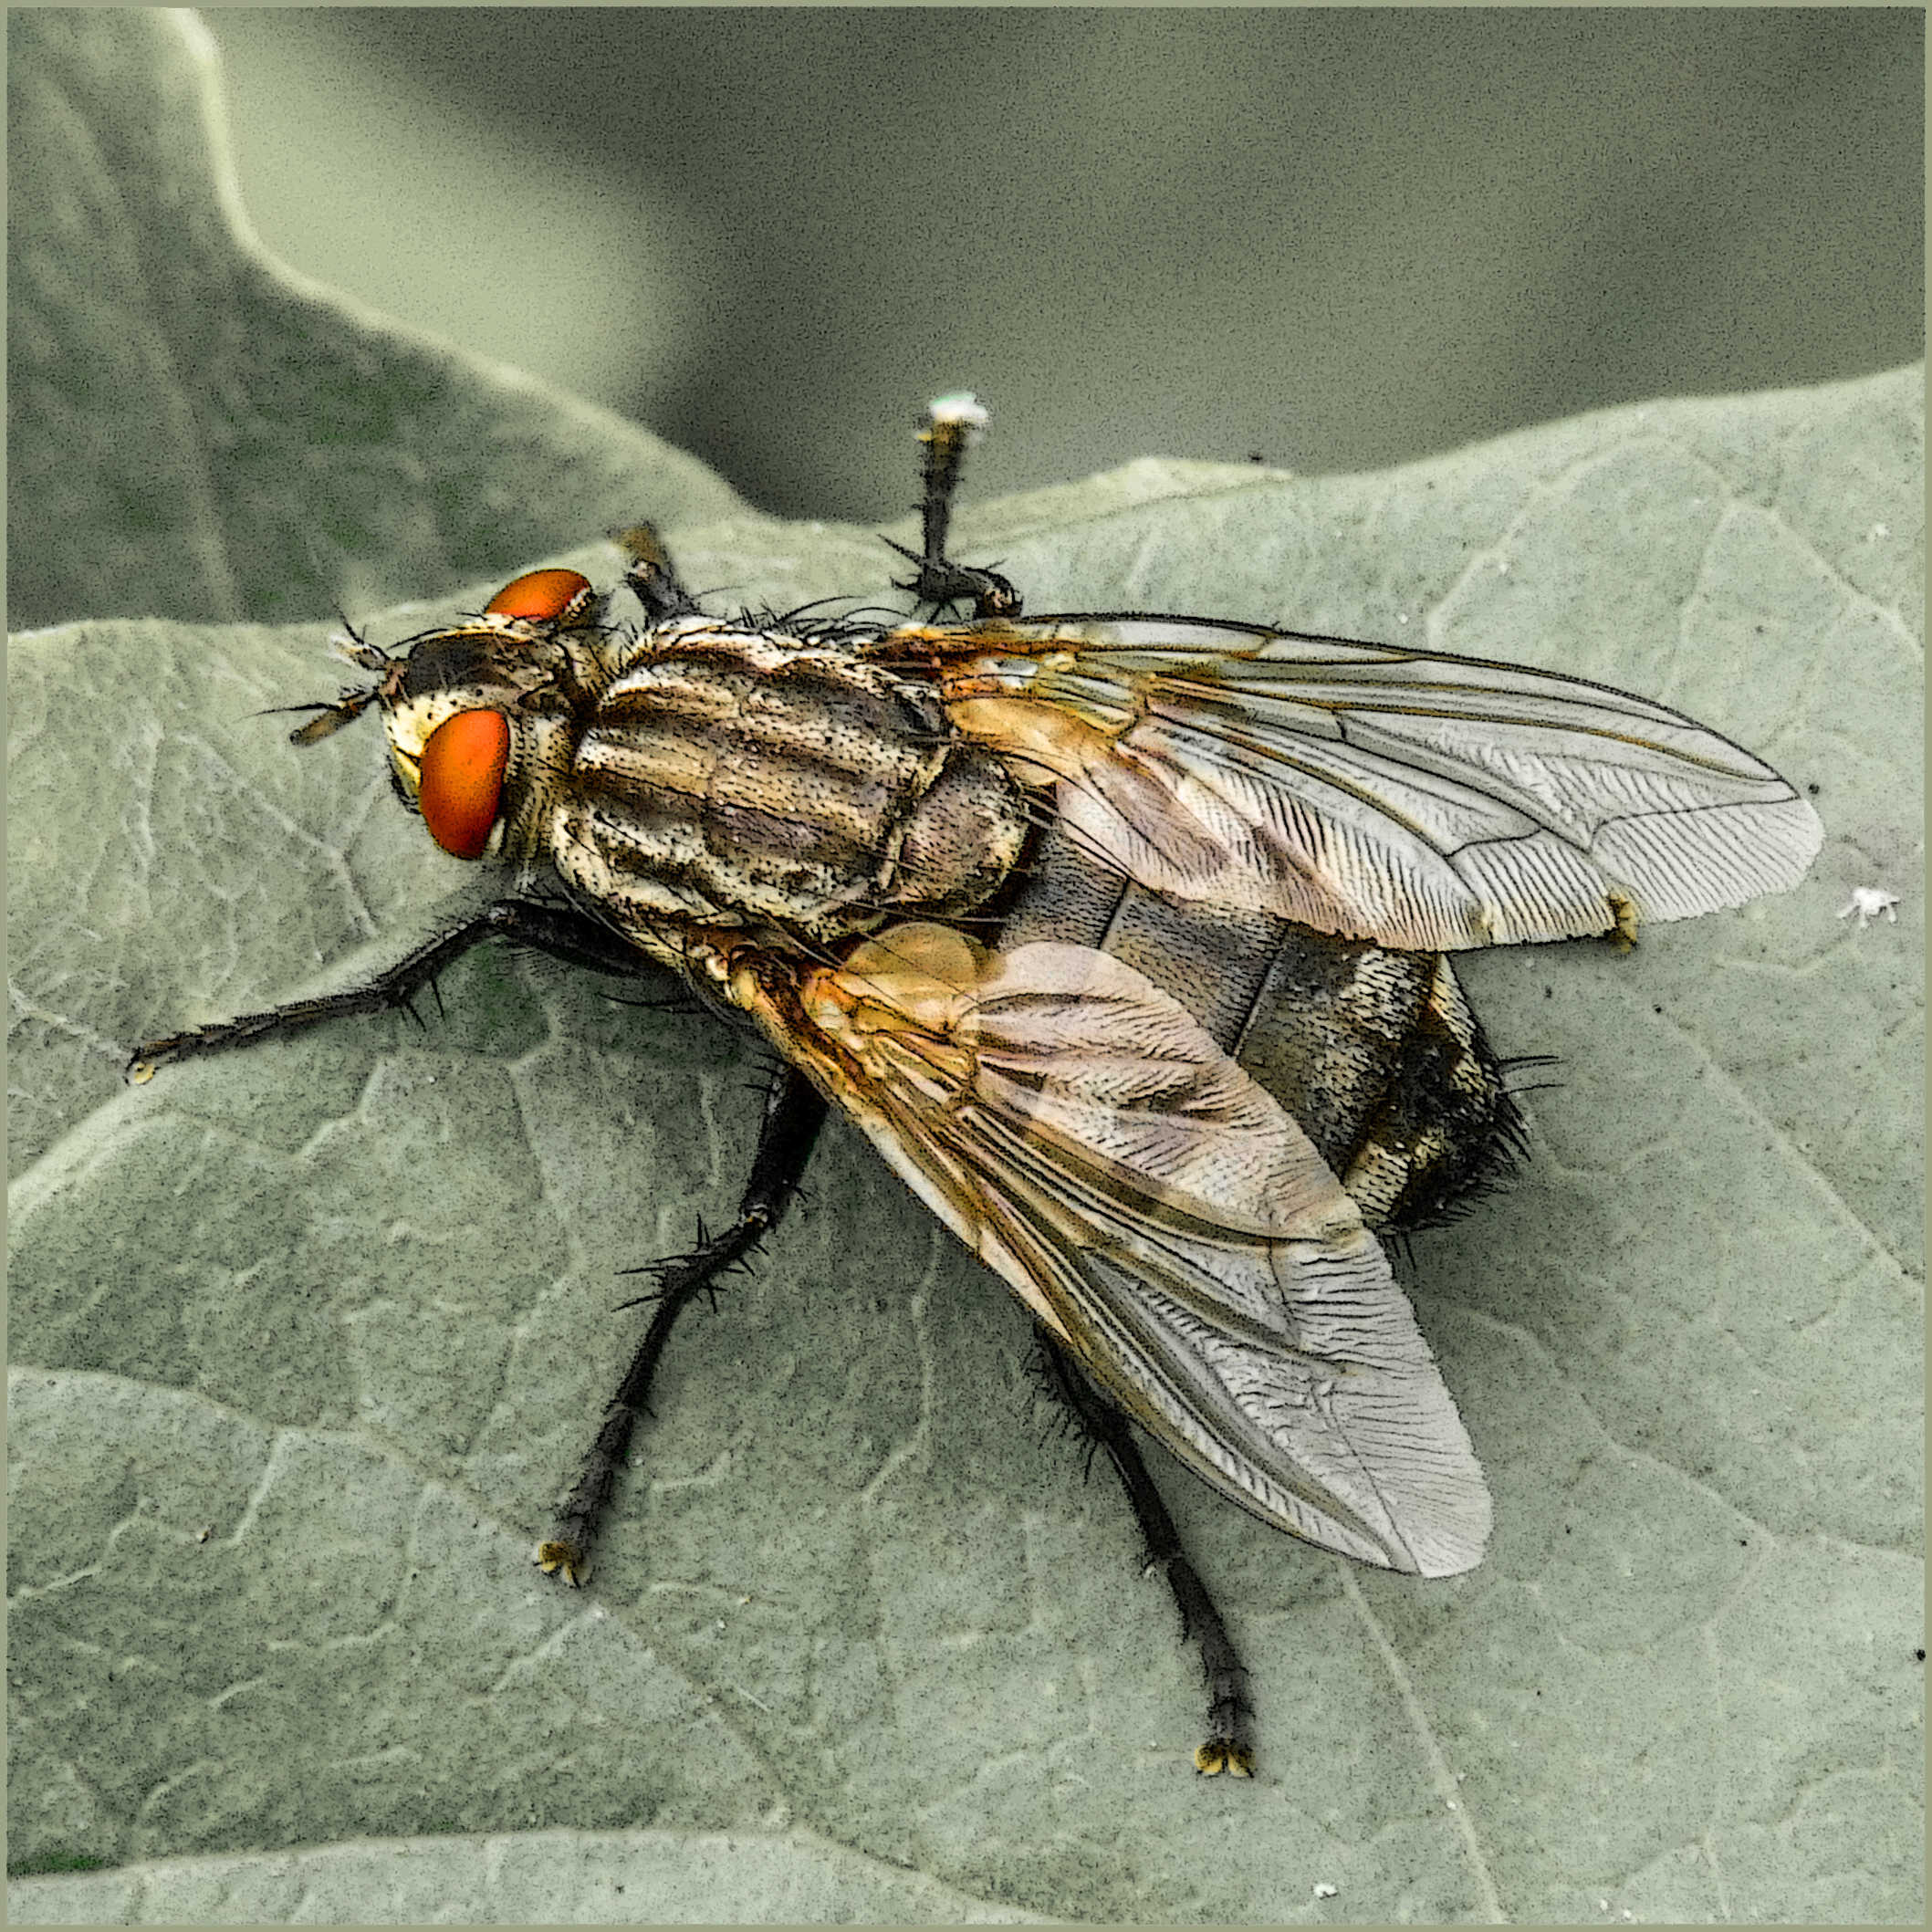 Flies are actually fab critters when you look at the detail.